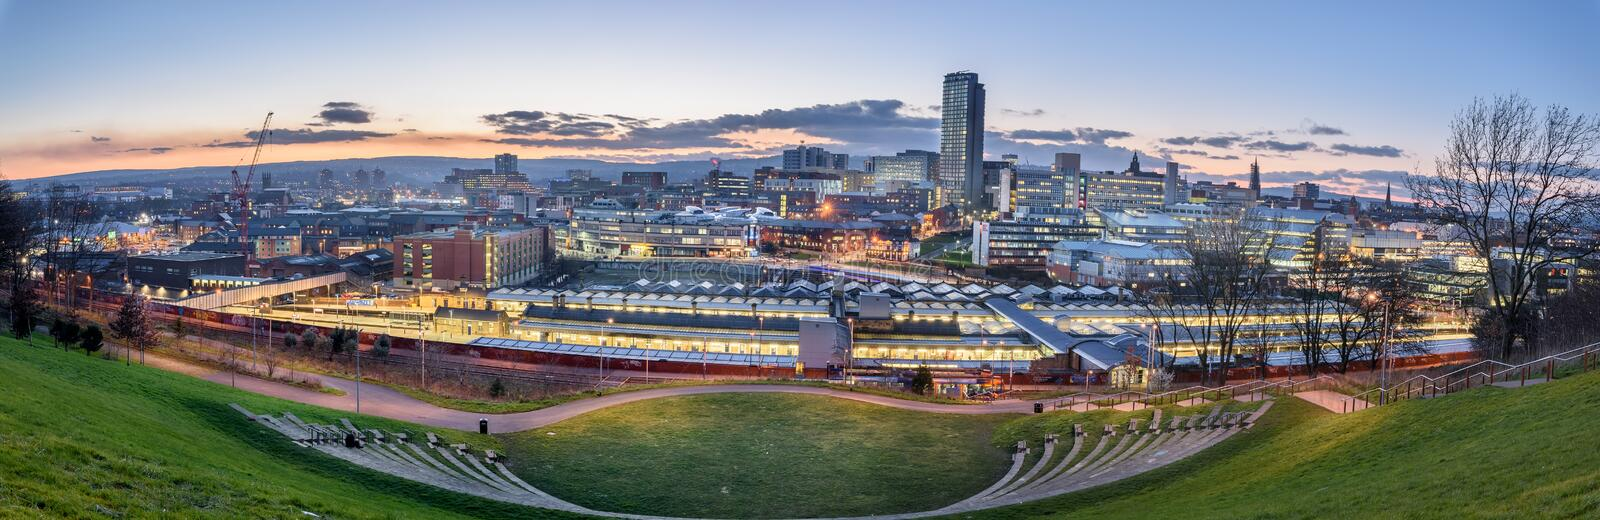 Panoramic view of Sheffield royalty free stock photography